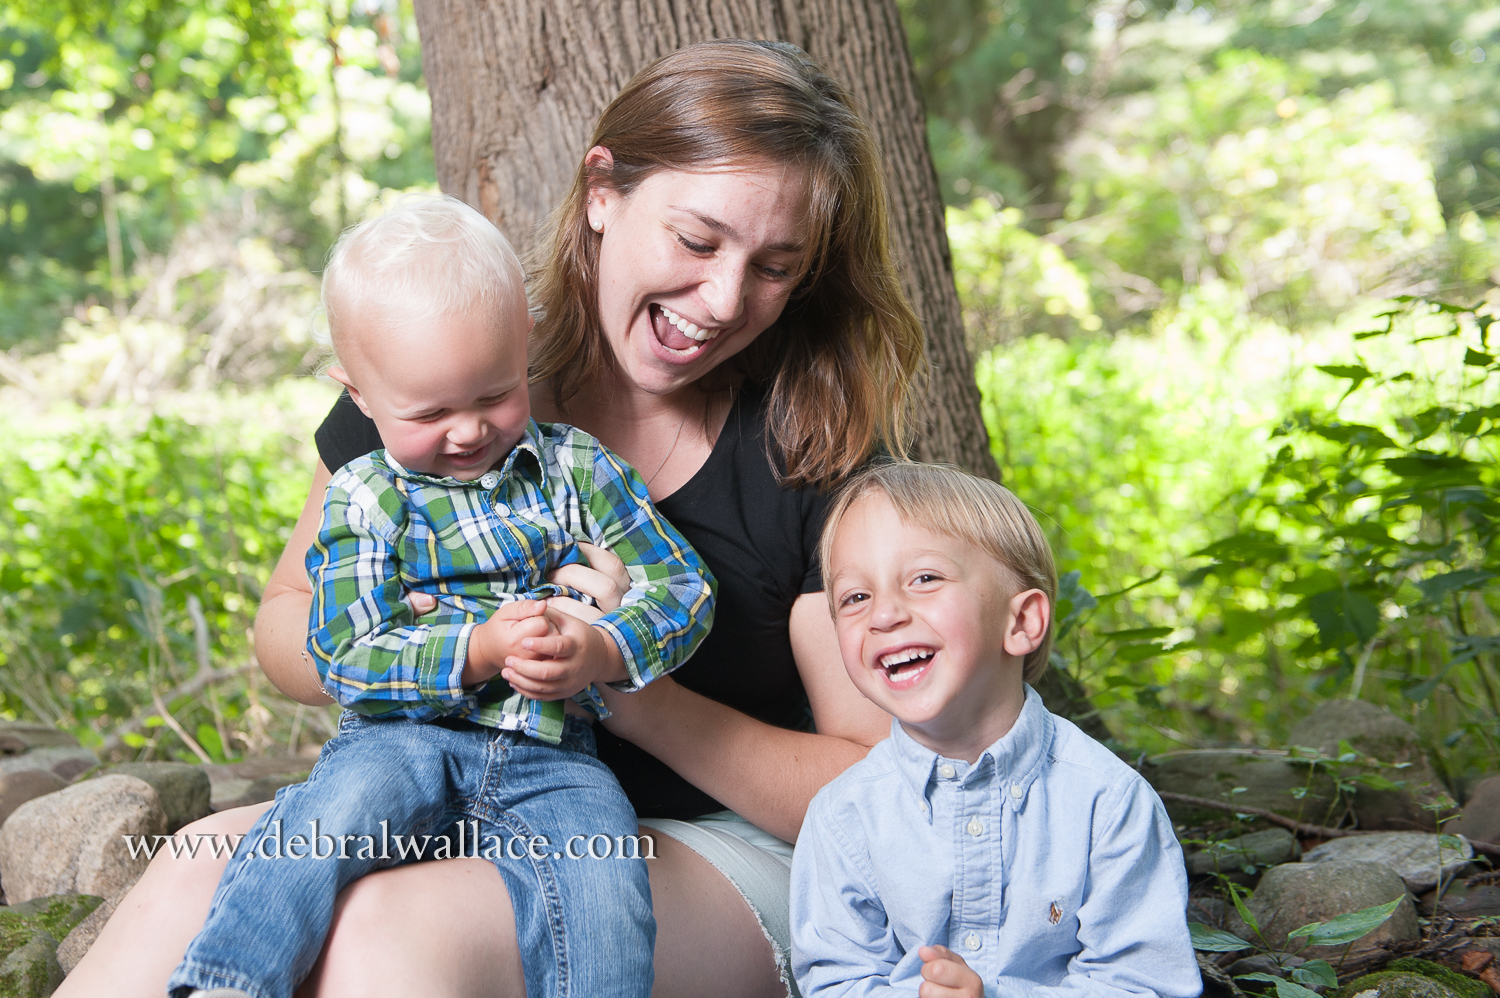 Mendon ponds sibling photography-8492